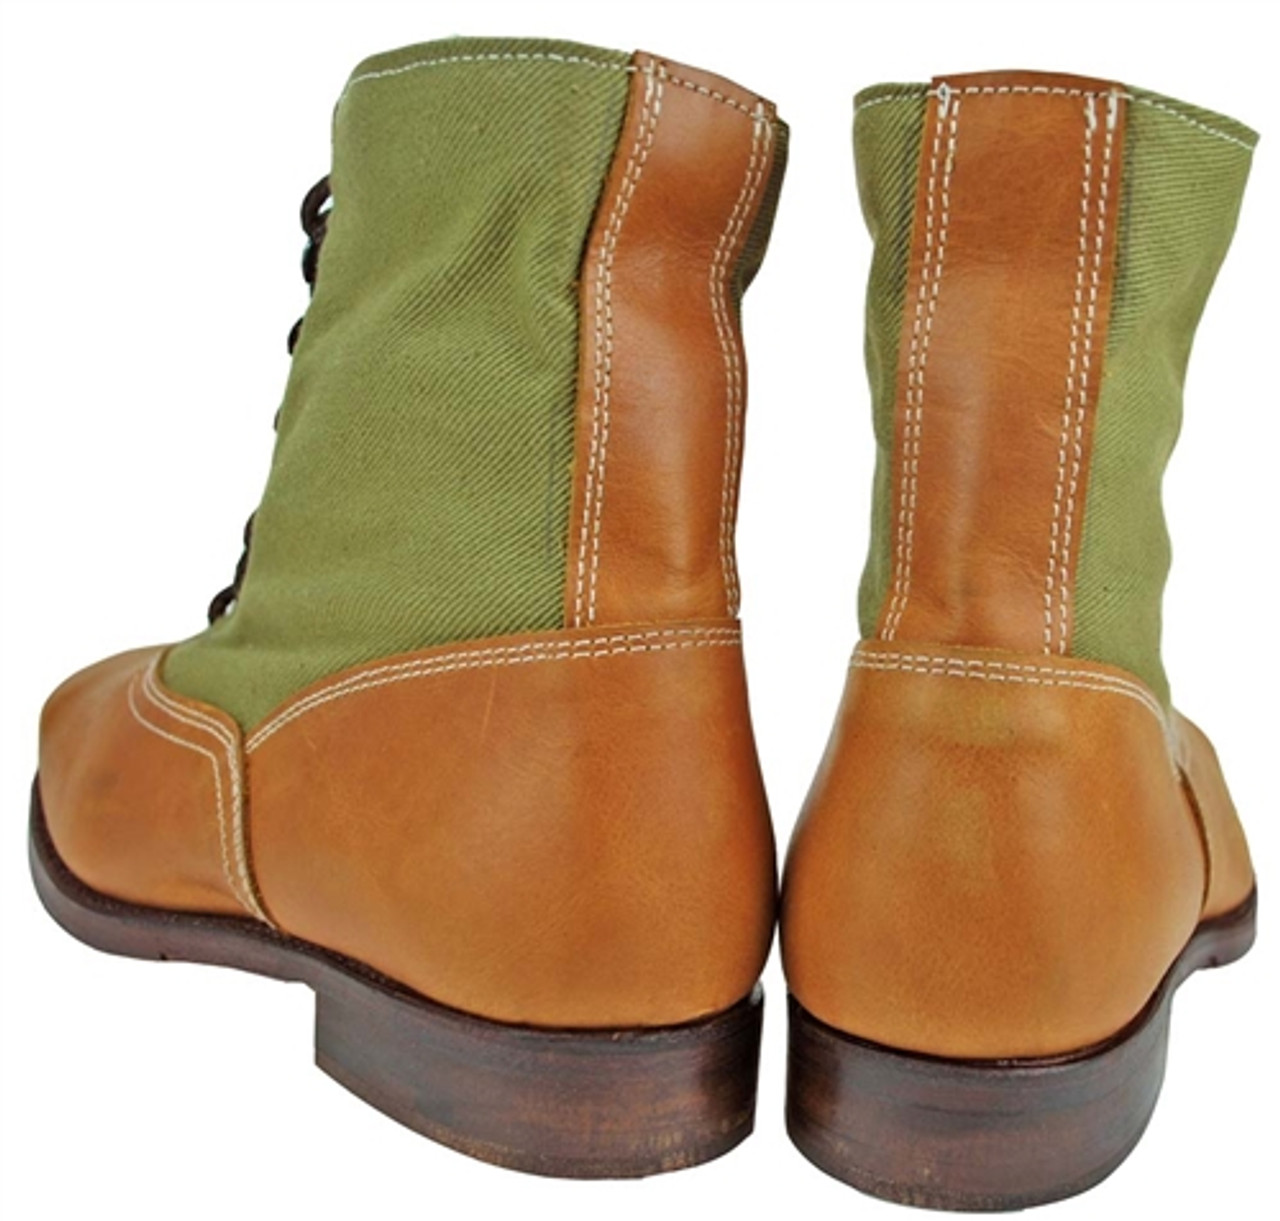 DAK Tropical Low Boots from Hessen Antique